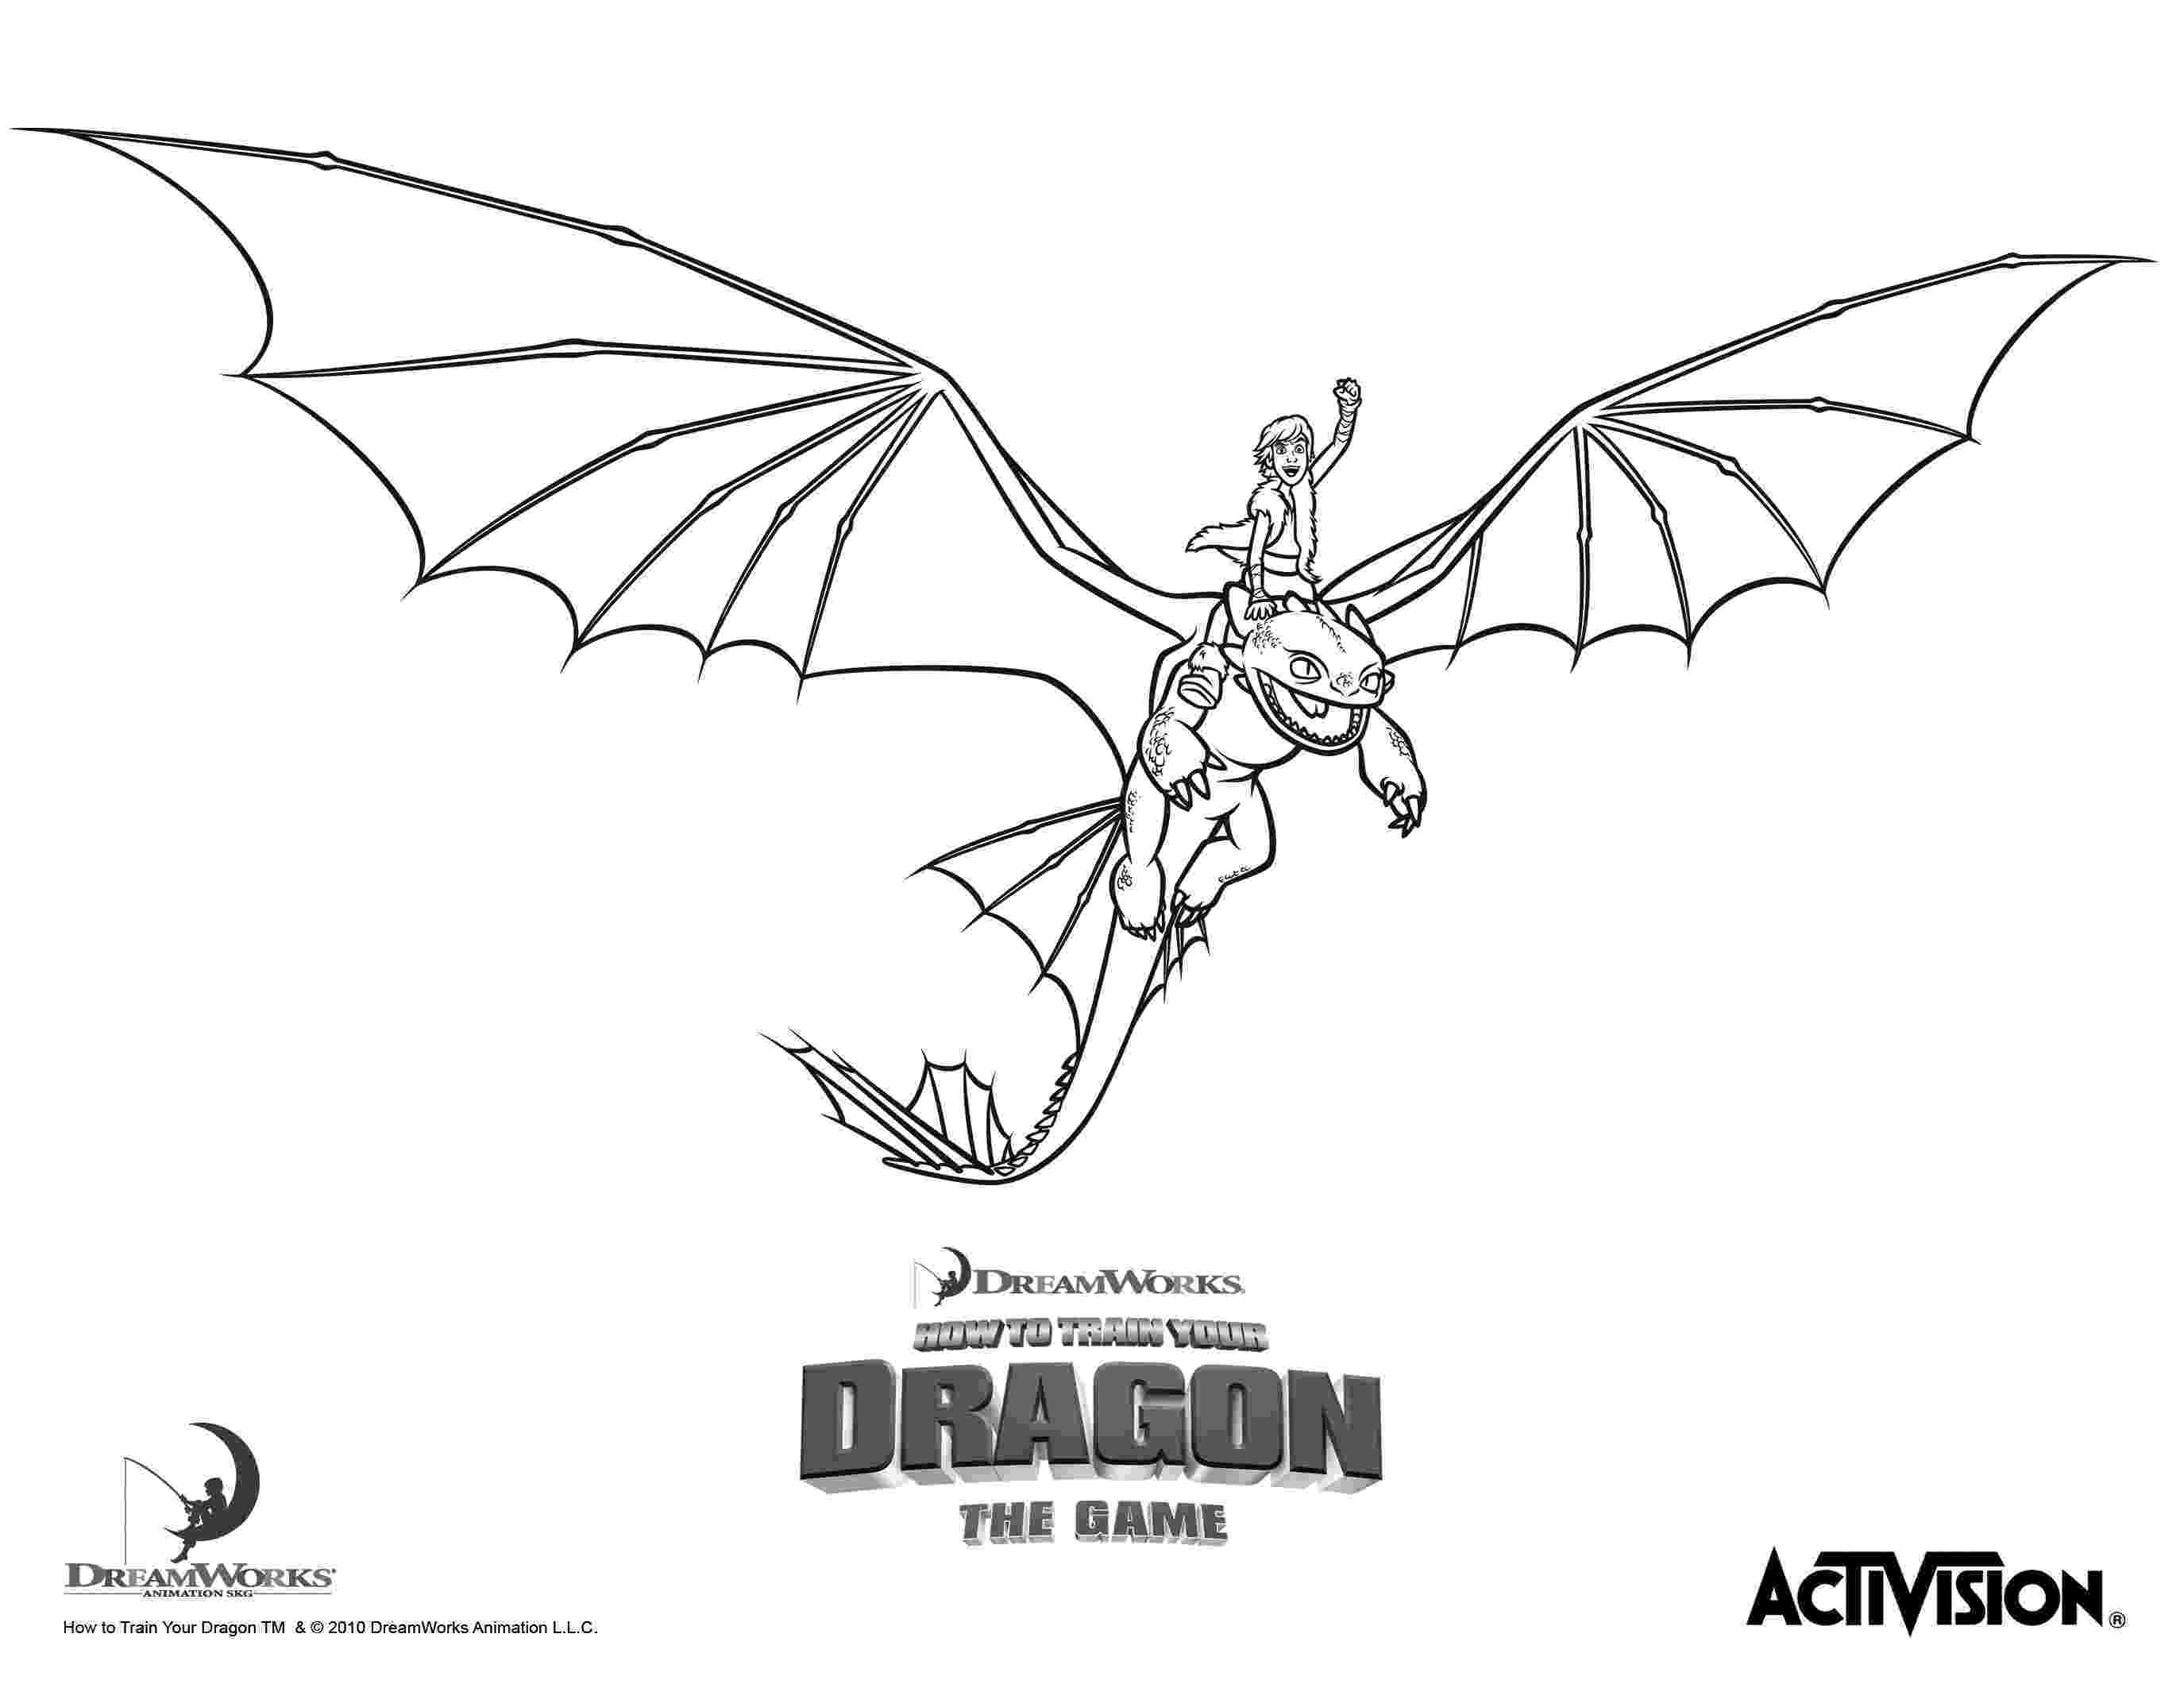 how to train your dragon coloring pages for kids printable how to train your dragon coloring pages and activity sheets pages coloring your to how dragon printable for kids train